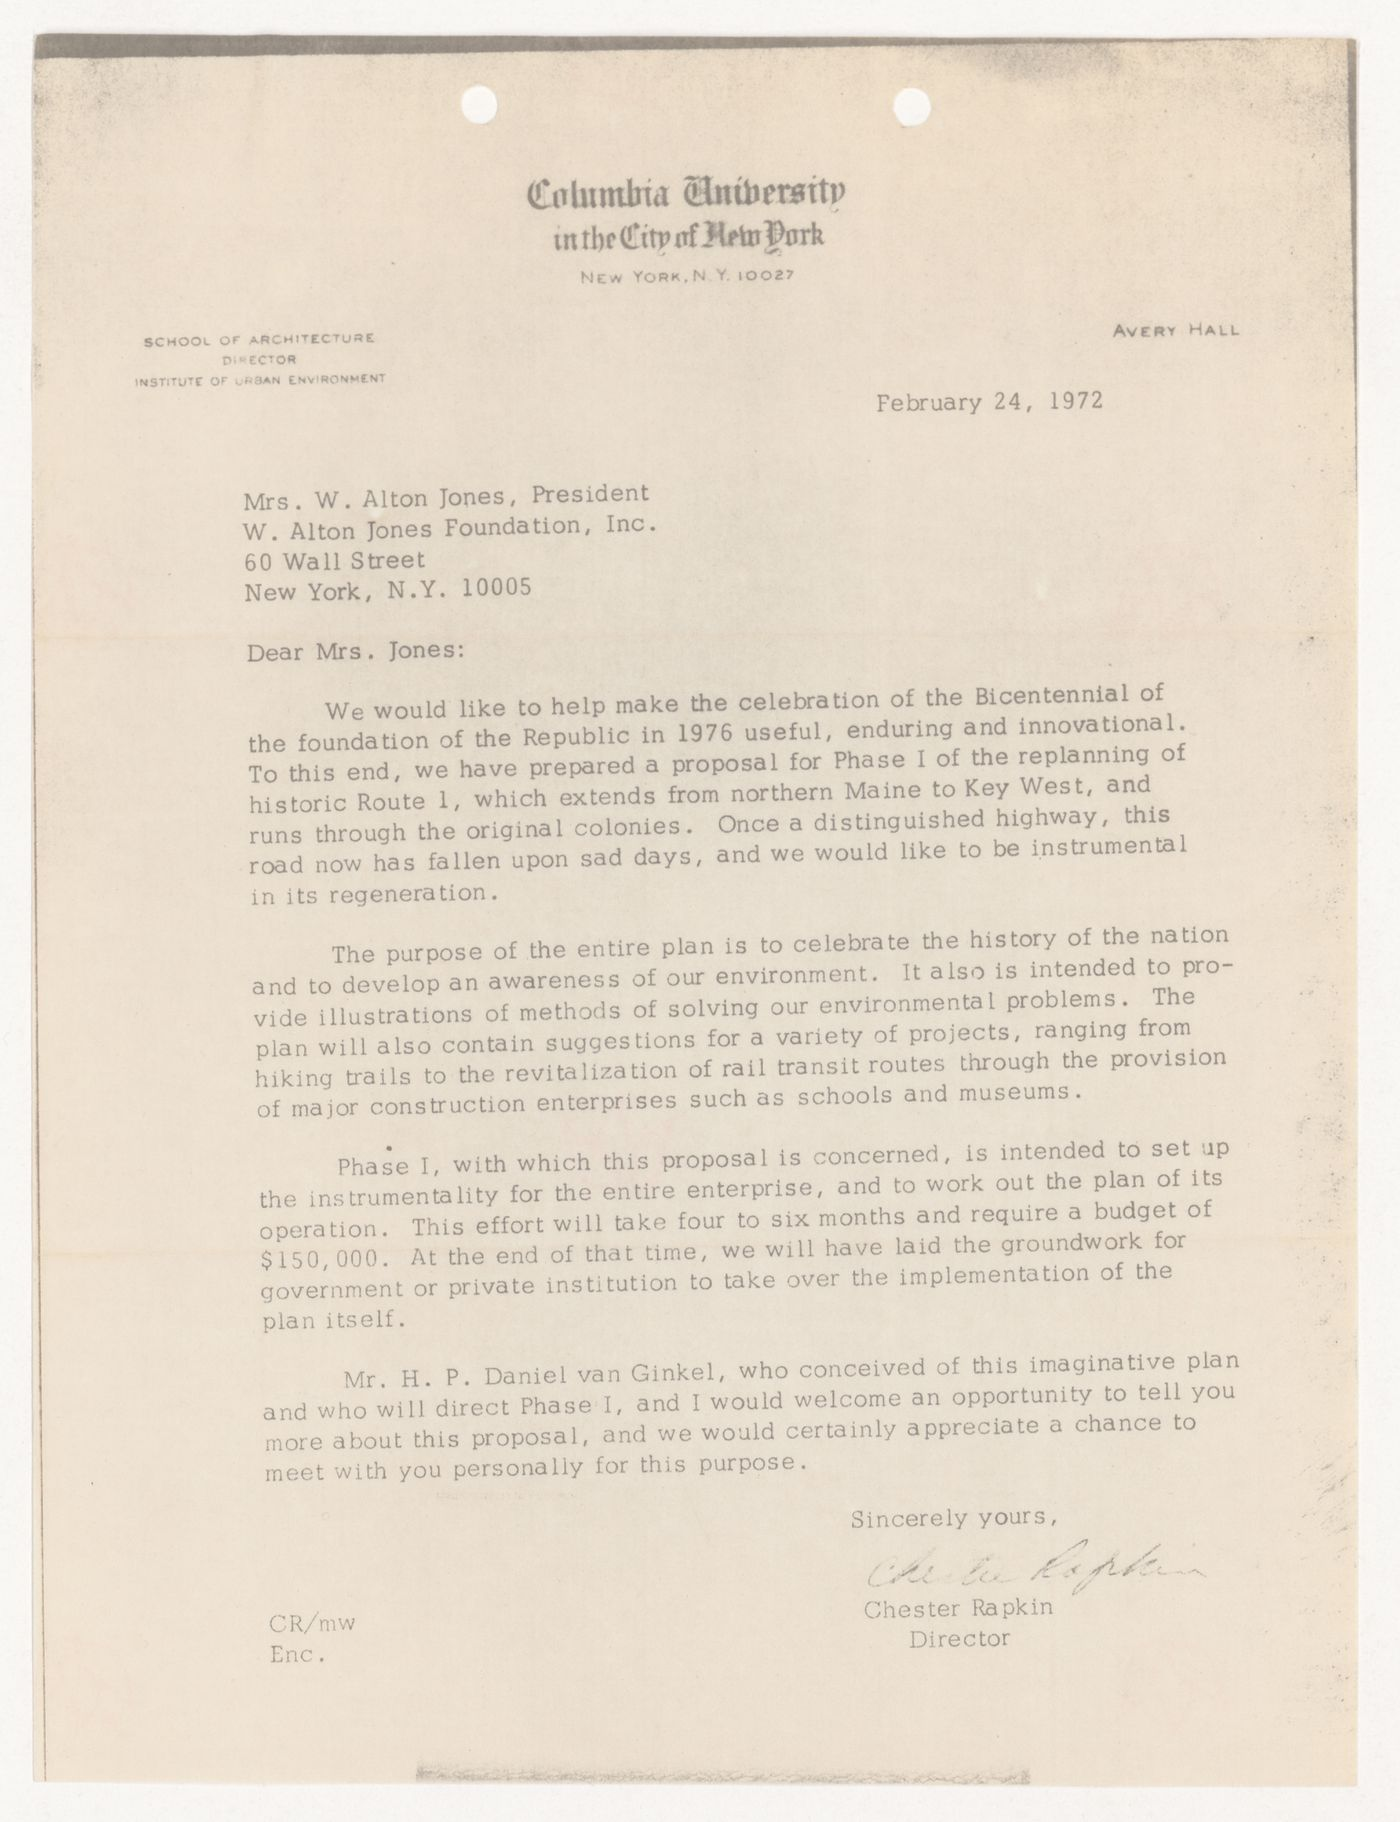 Letter from Chester Rapkin to Mrs. W. Alton Jones for United States One (U.S. 1)